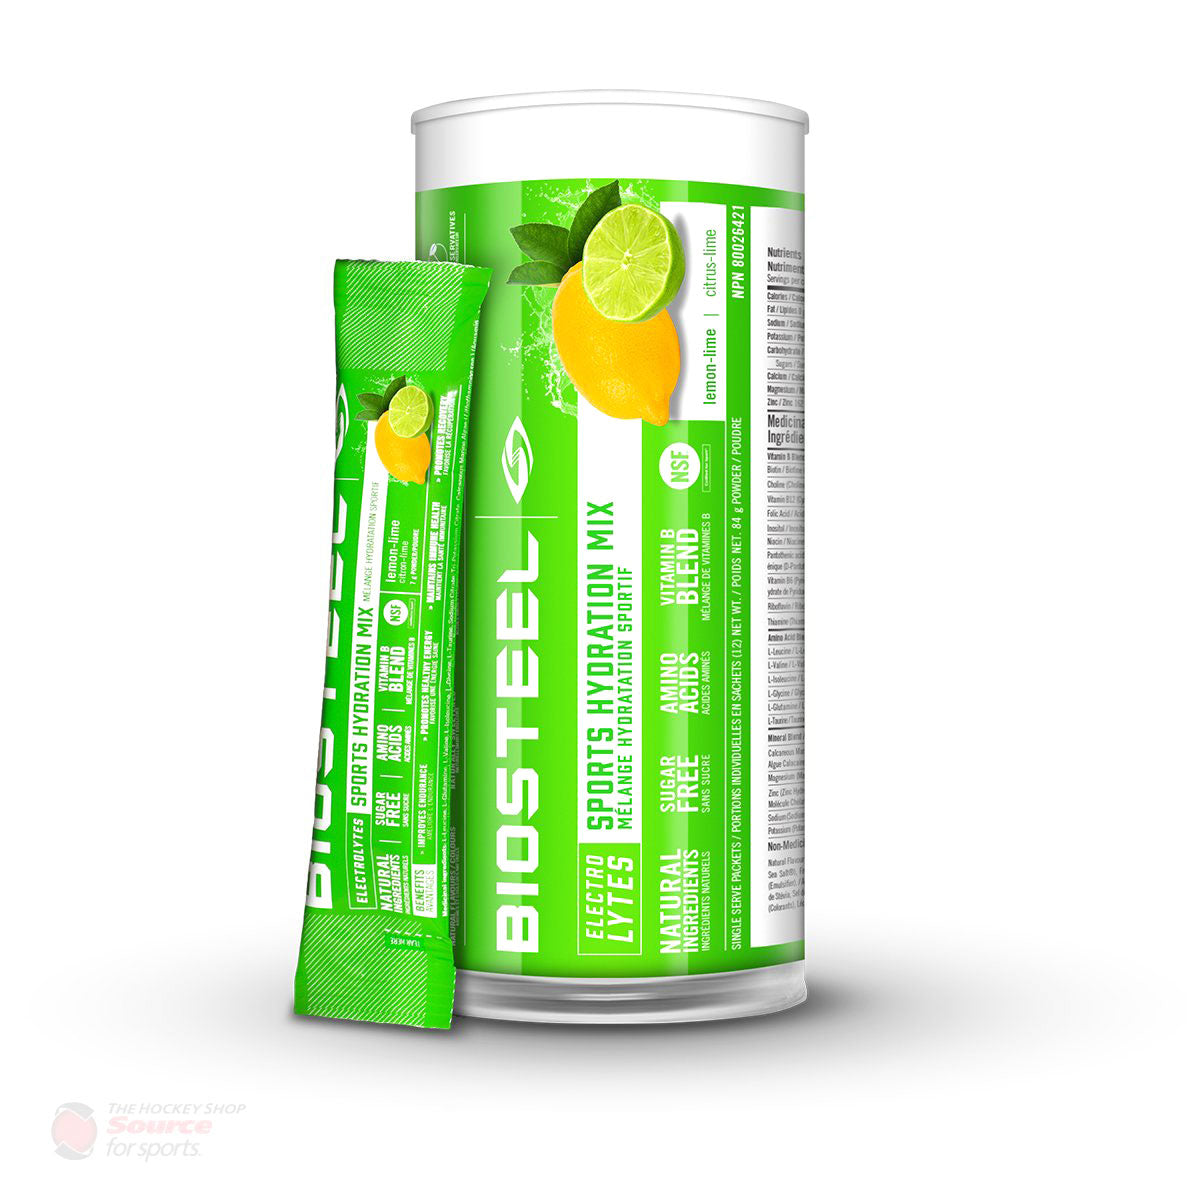 BioSteel High Performance Sports Mix - Lemon Lime (12 Packets)